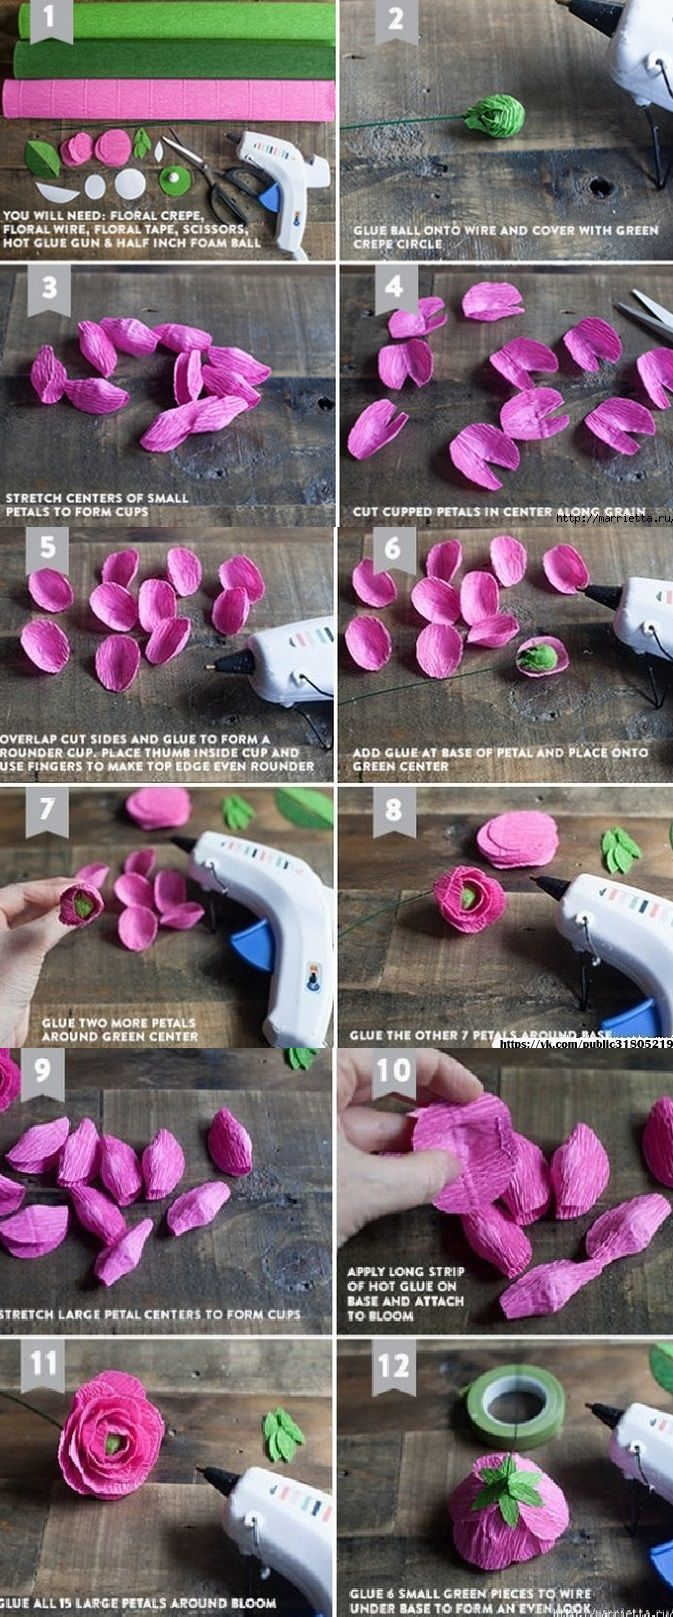 Pin by Mercury on Crafting u Gifts  Pinterest  Craft gifts Diy